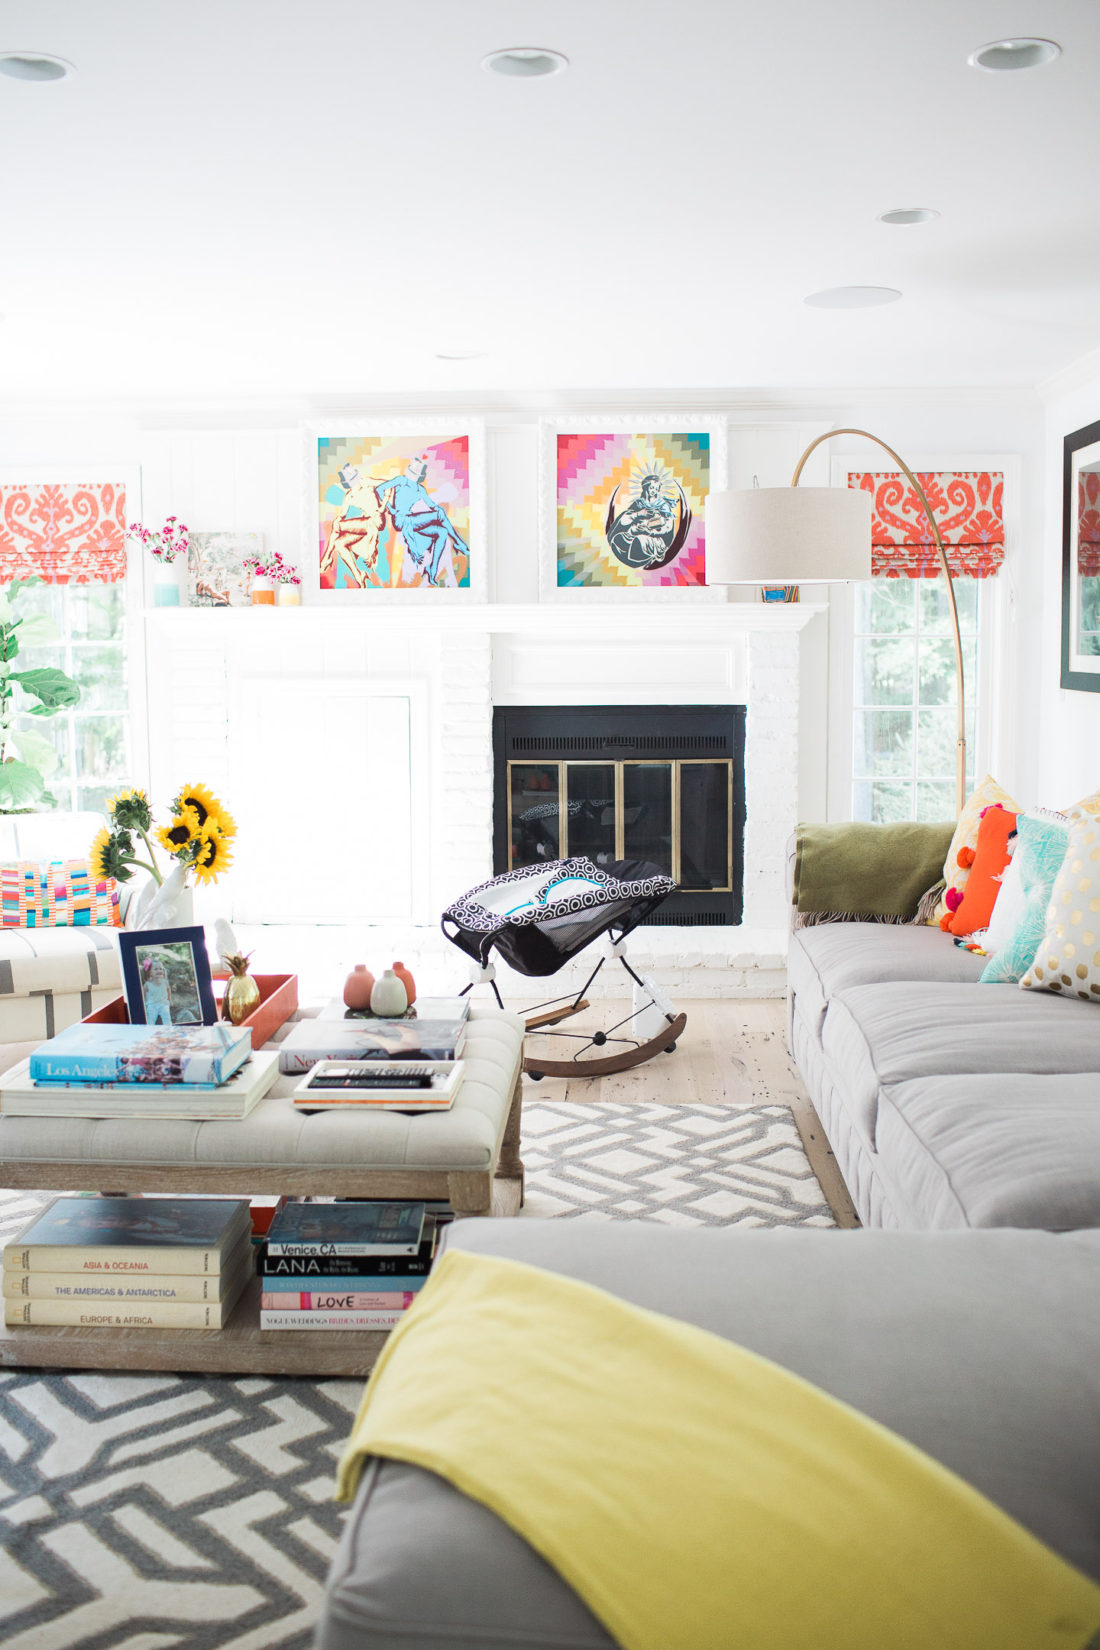 The jonathan adler crafter by fisher price collection deluxe rock n' play sleeper as pictured in the chic and colorful family room of blogger Eva Amurri Martino